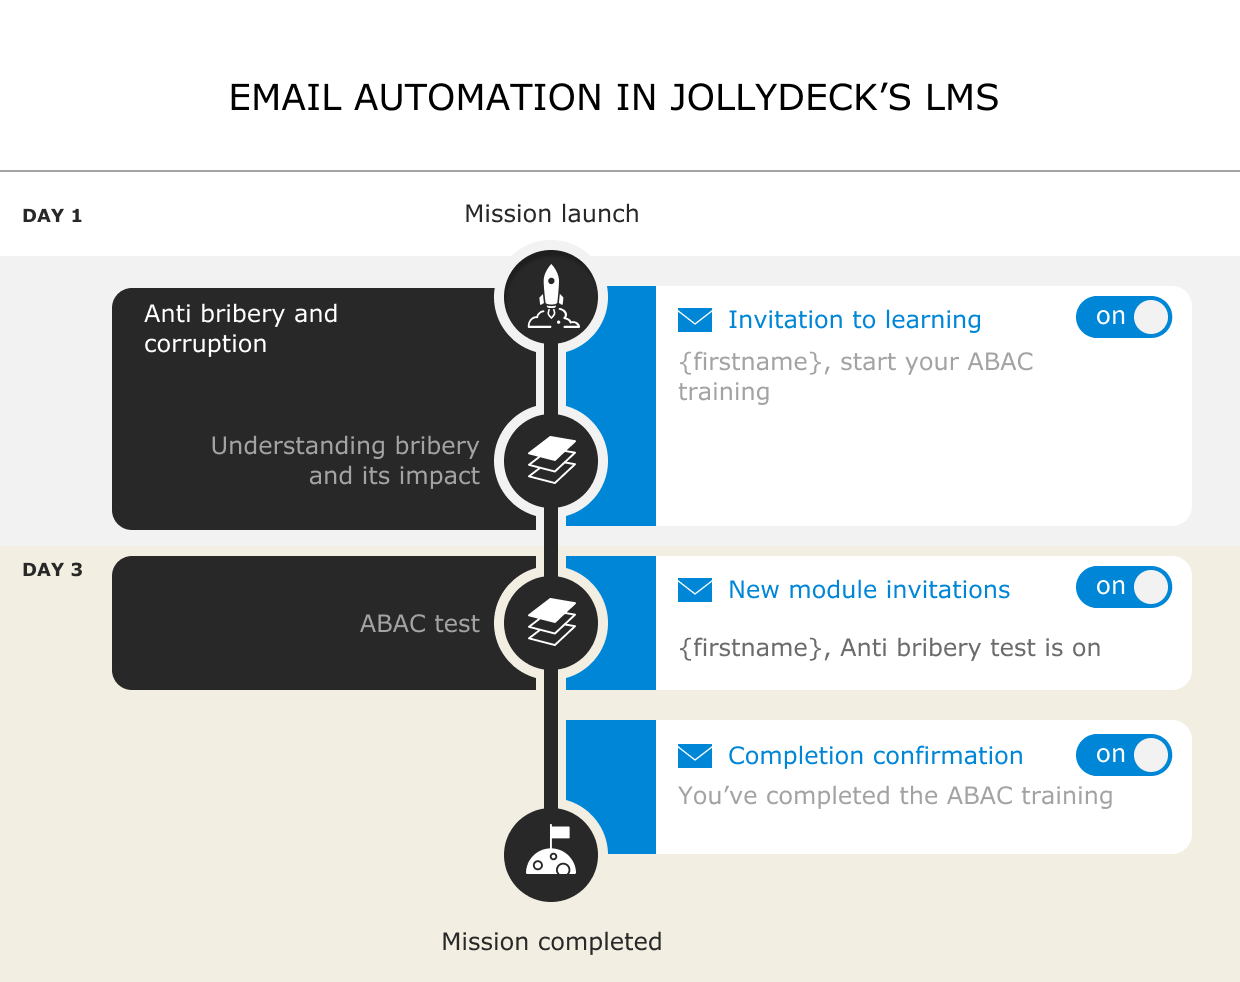 Email automation in JollyDeck LMS